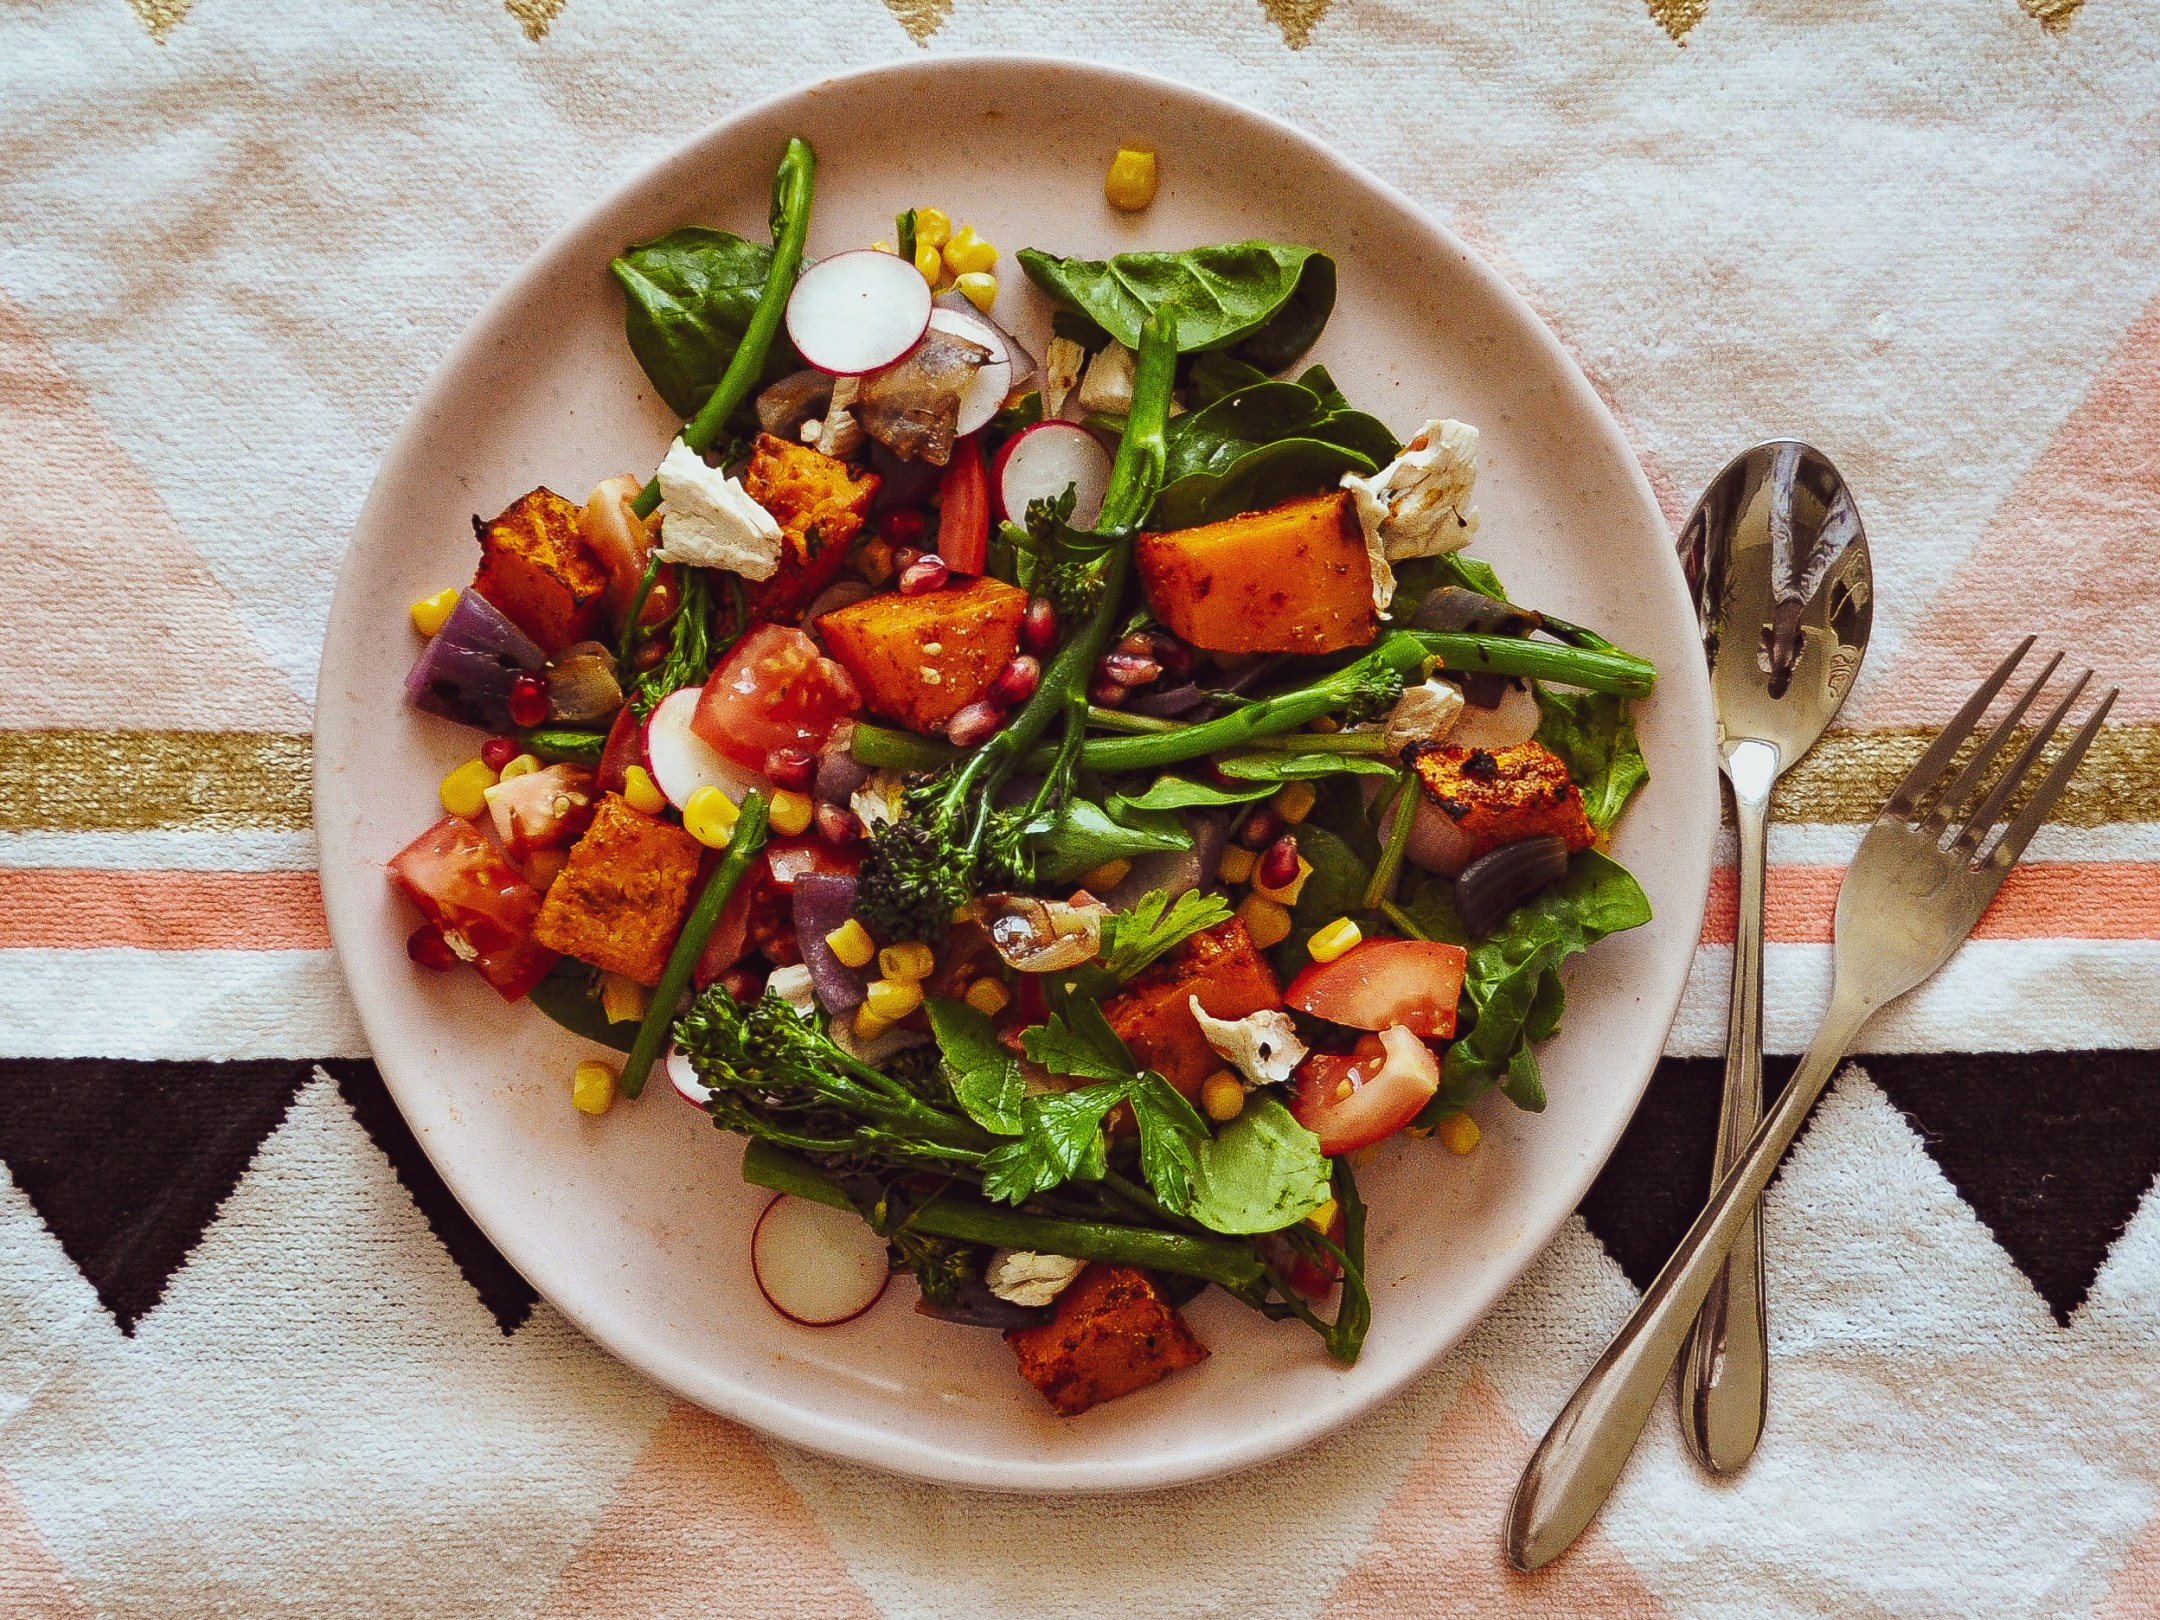 Creative pumpkin recipes for fall: Pumpkin, broccolini and pomegranate salad at Tsp.